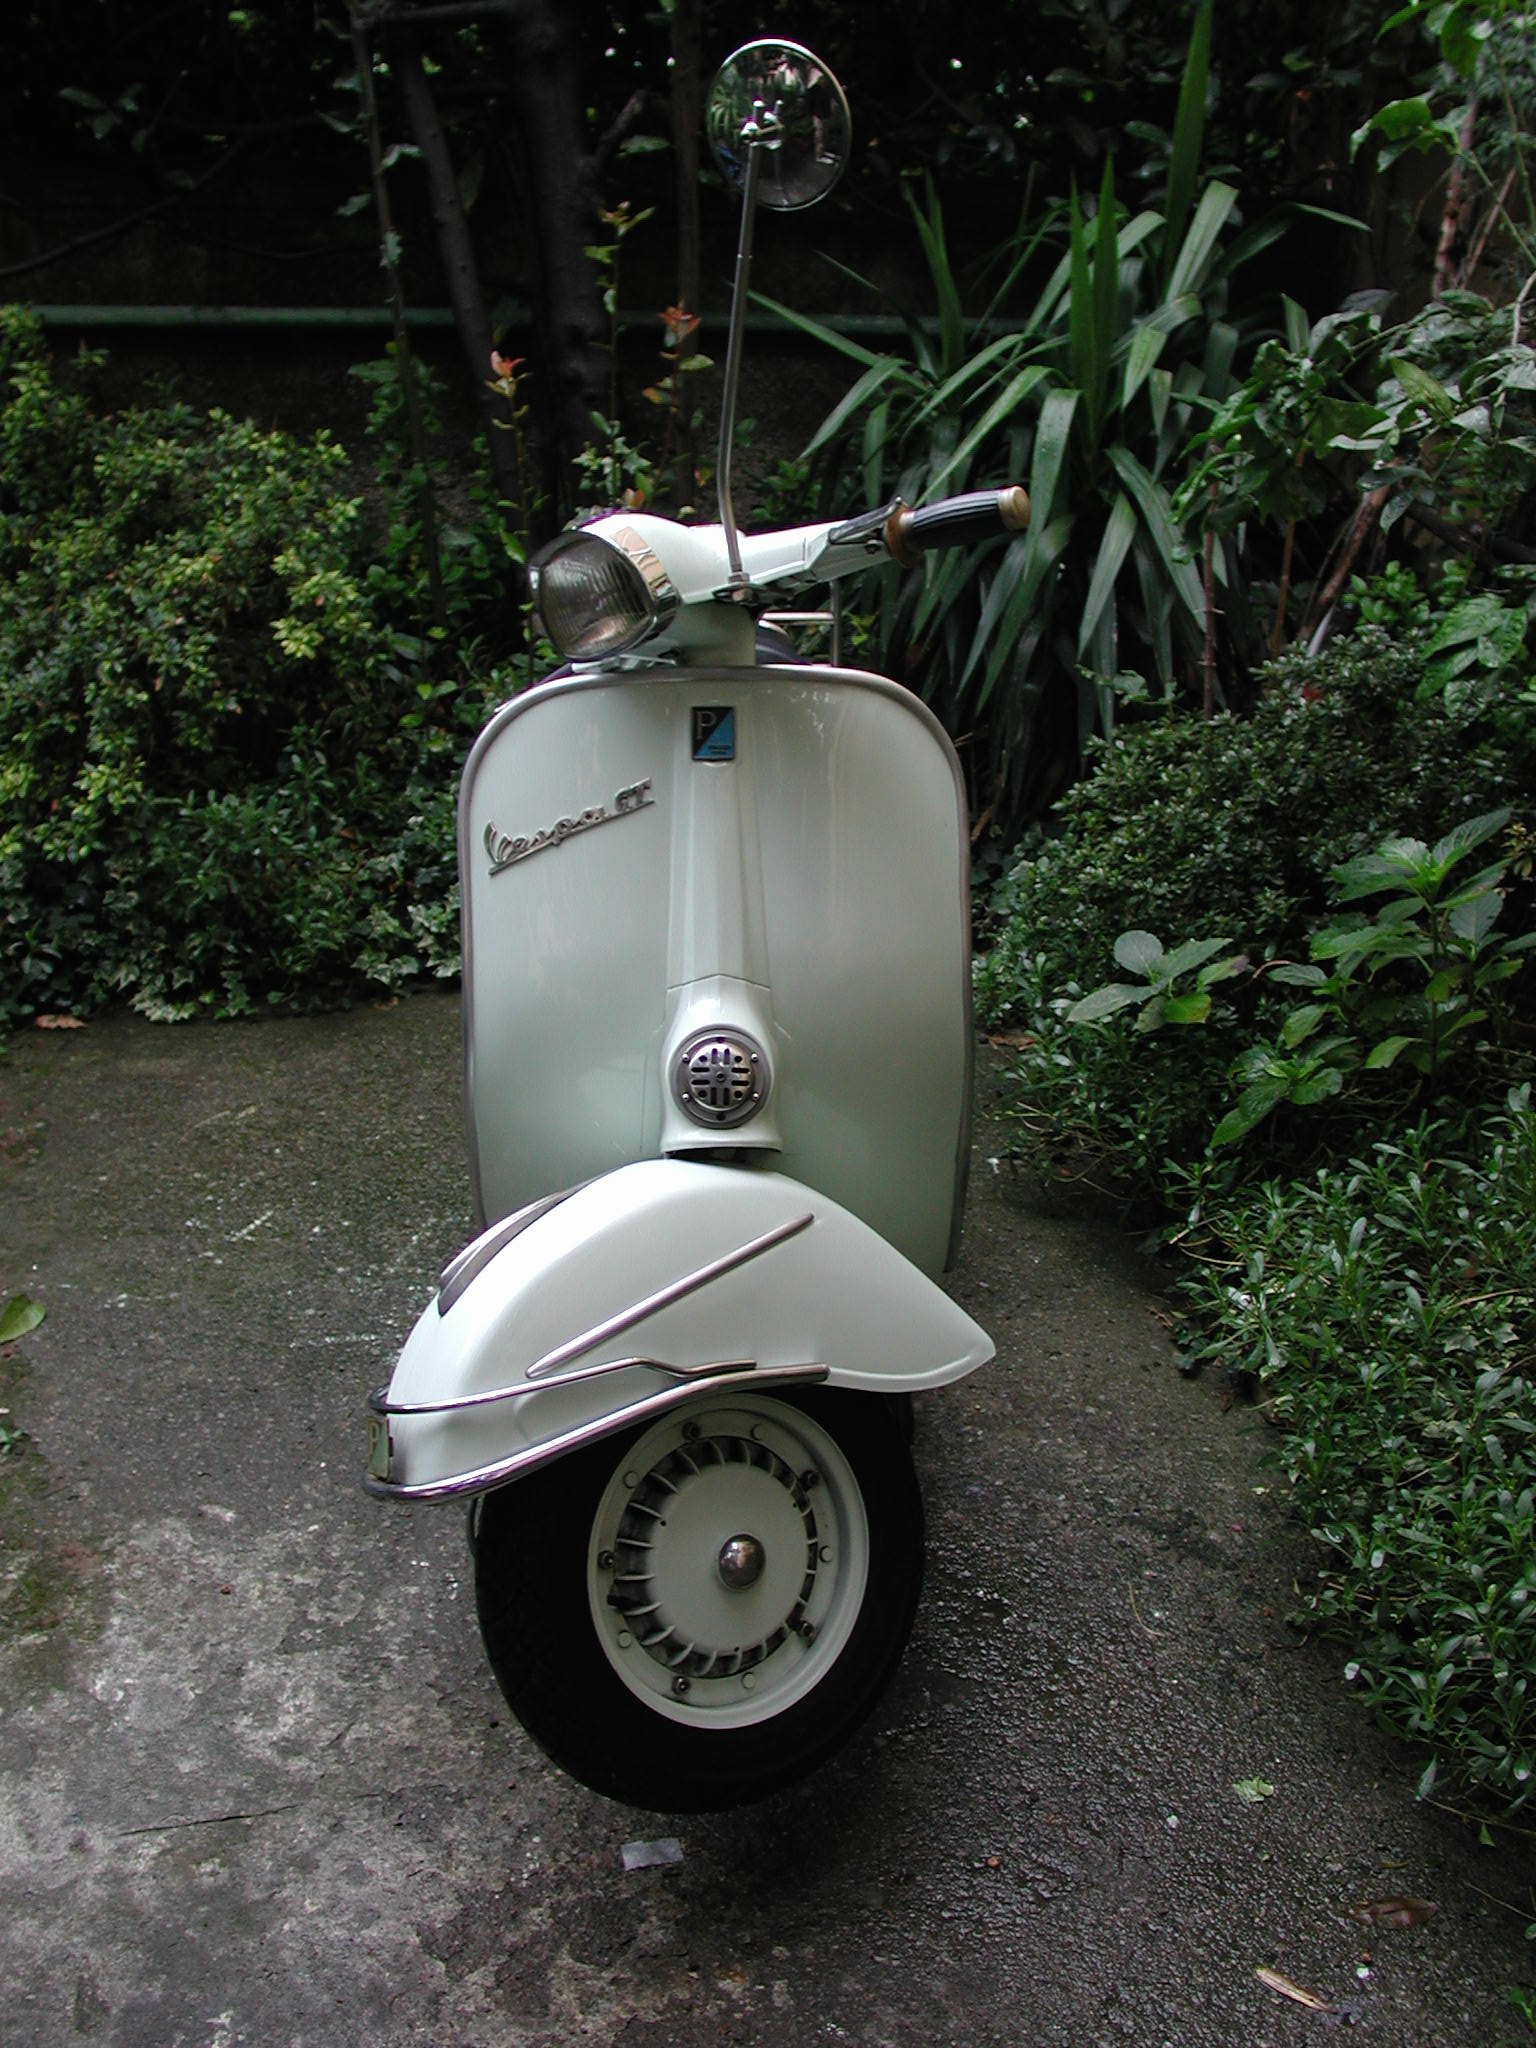 piaggio vespa 125 gt photos and comments. Black Bedroom Furniture Sets. Home Design Ideas